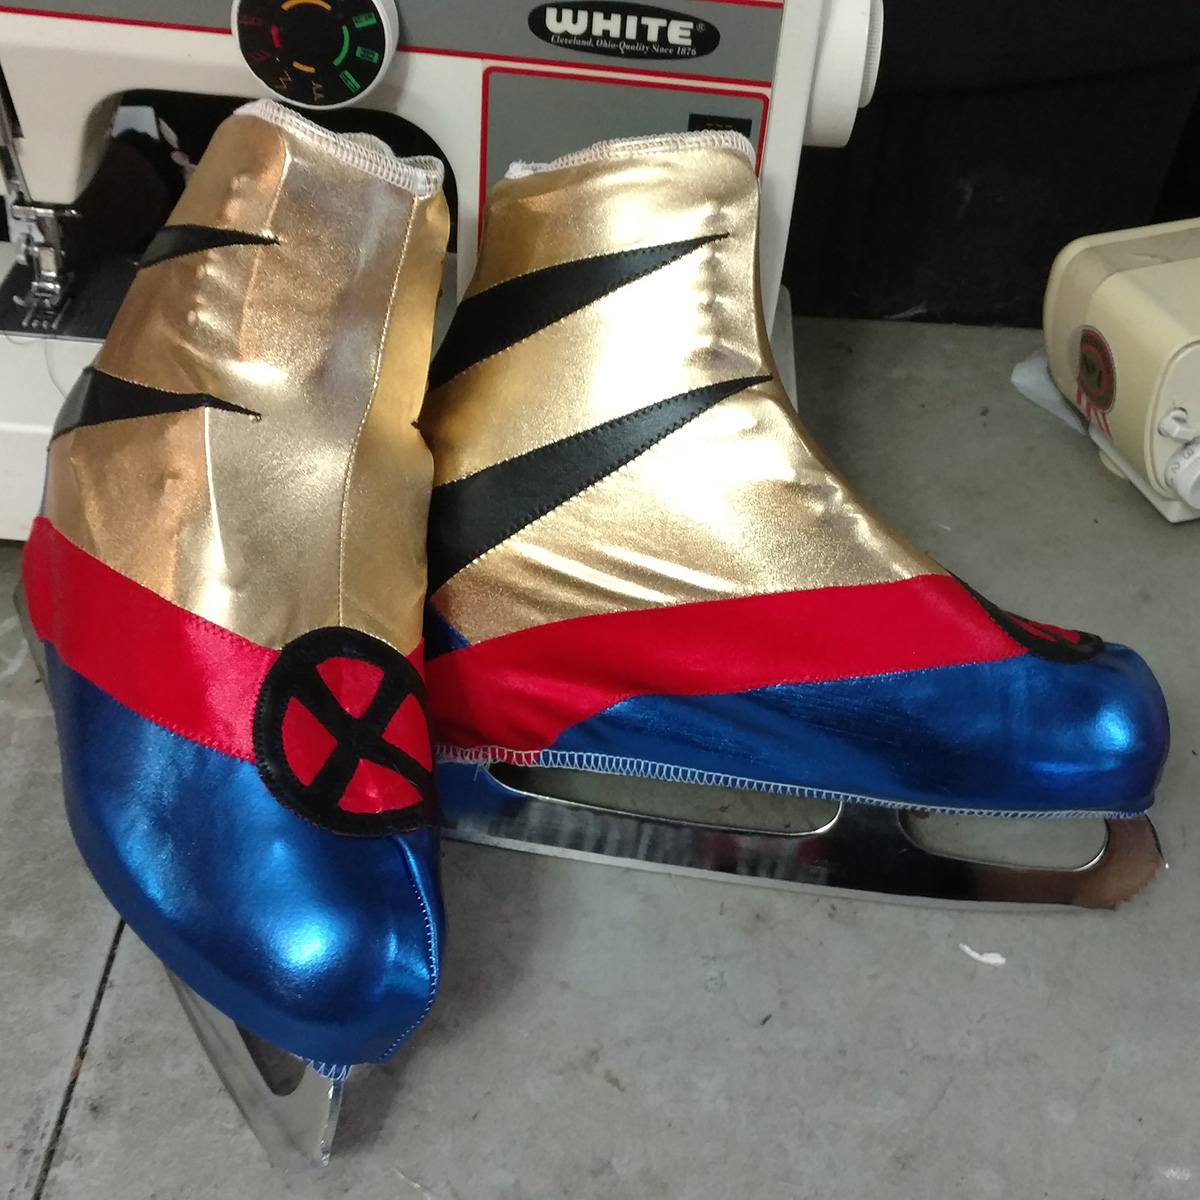 Gold, red, and royal blue skate covers with an X-Men logo and Wolverine slashes are shown on a pair of figure skates.